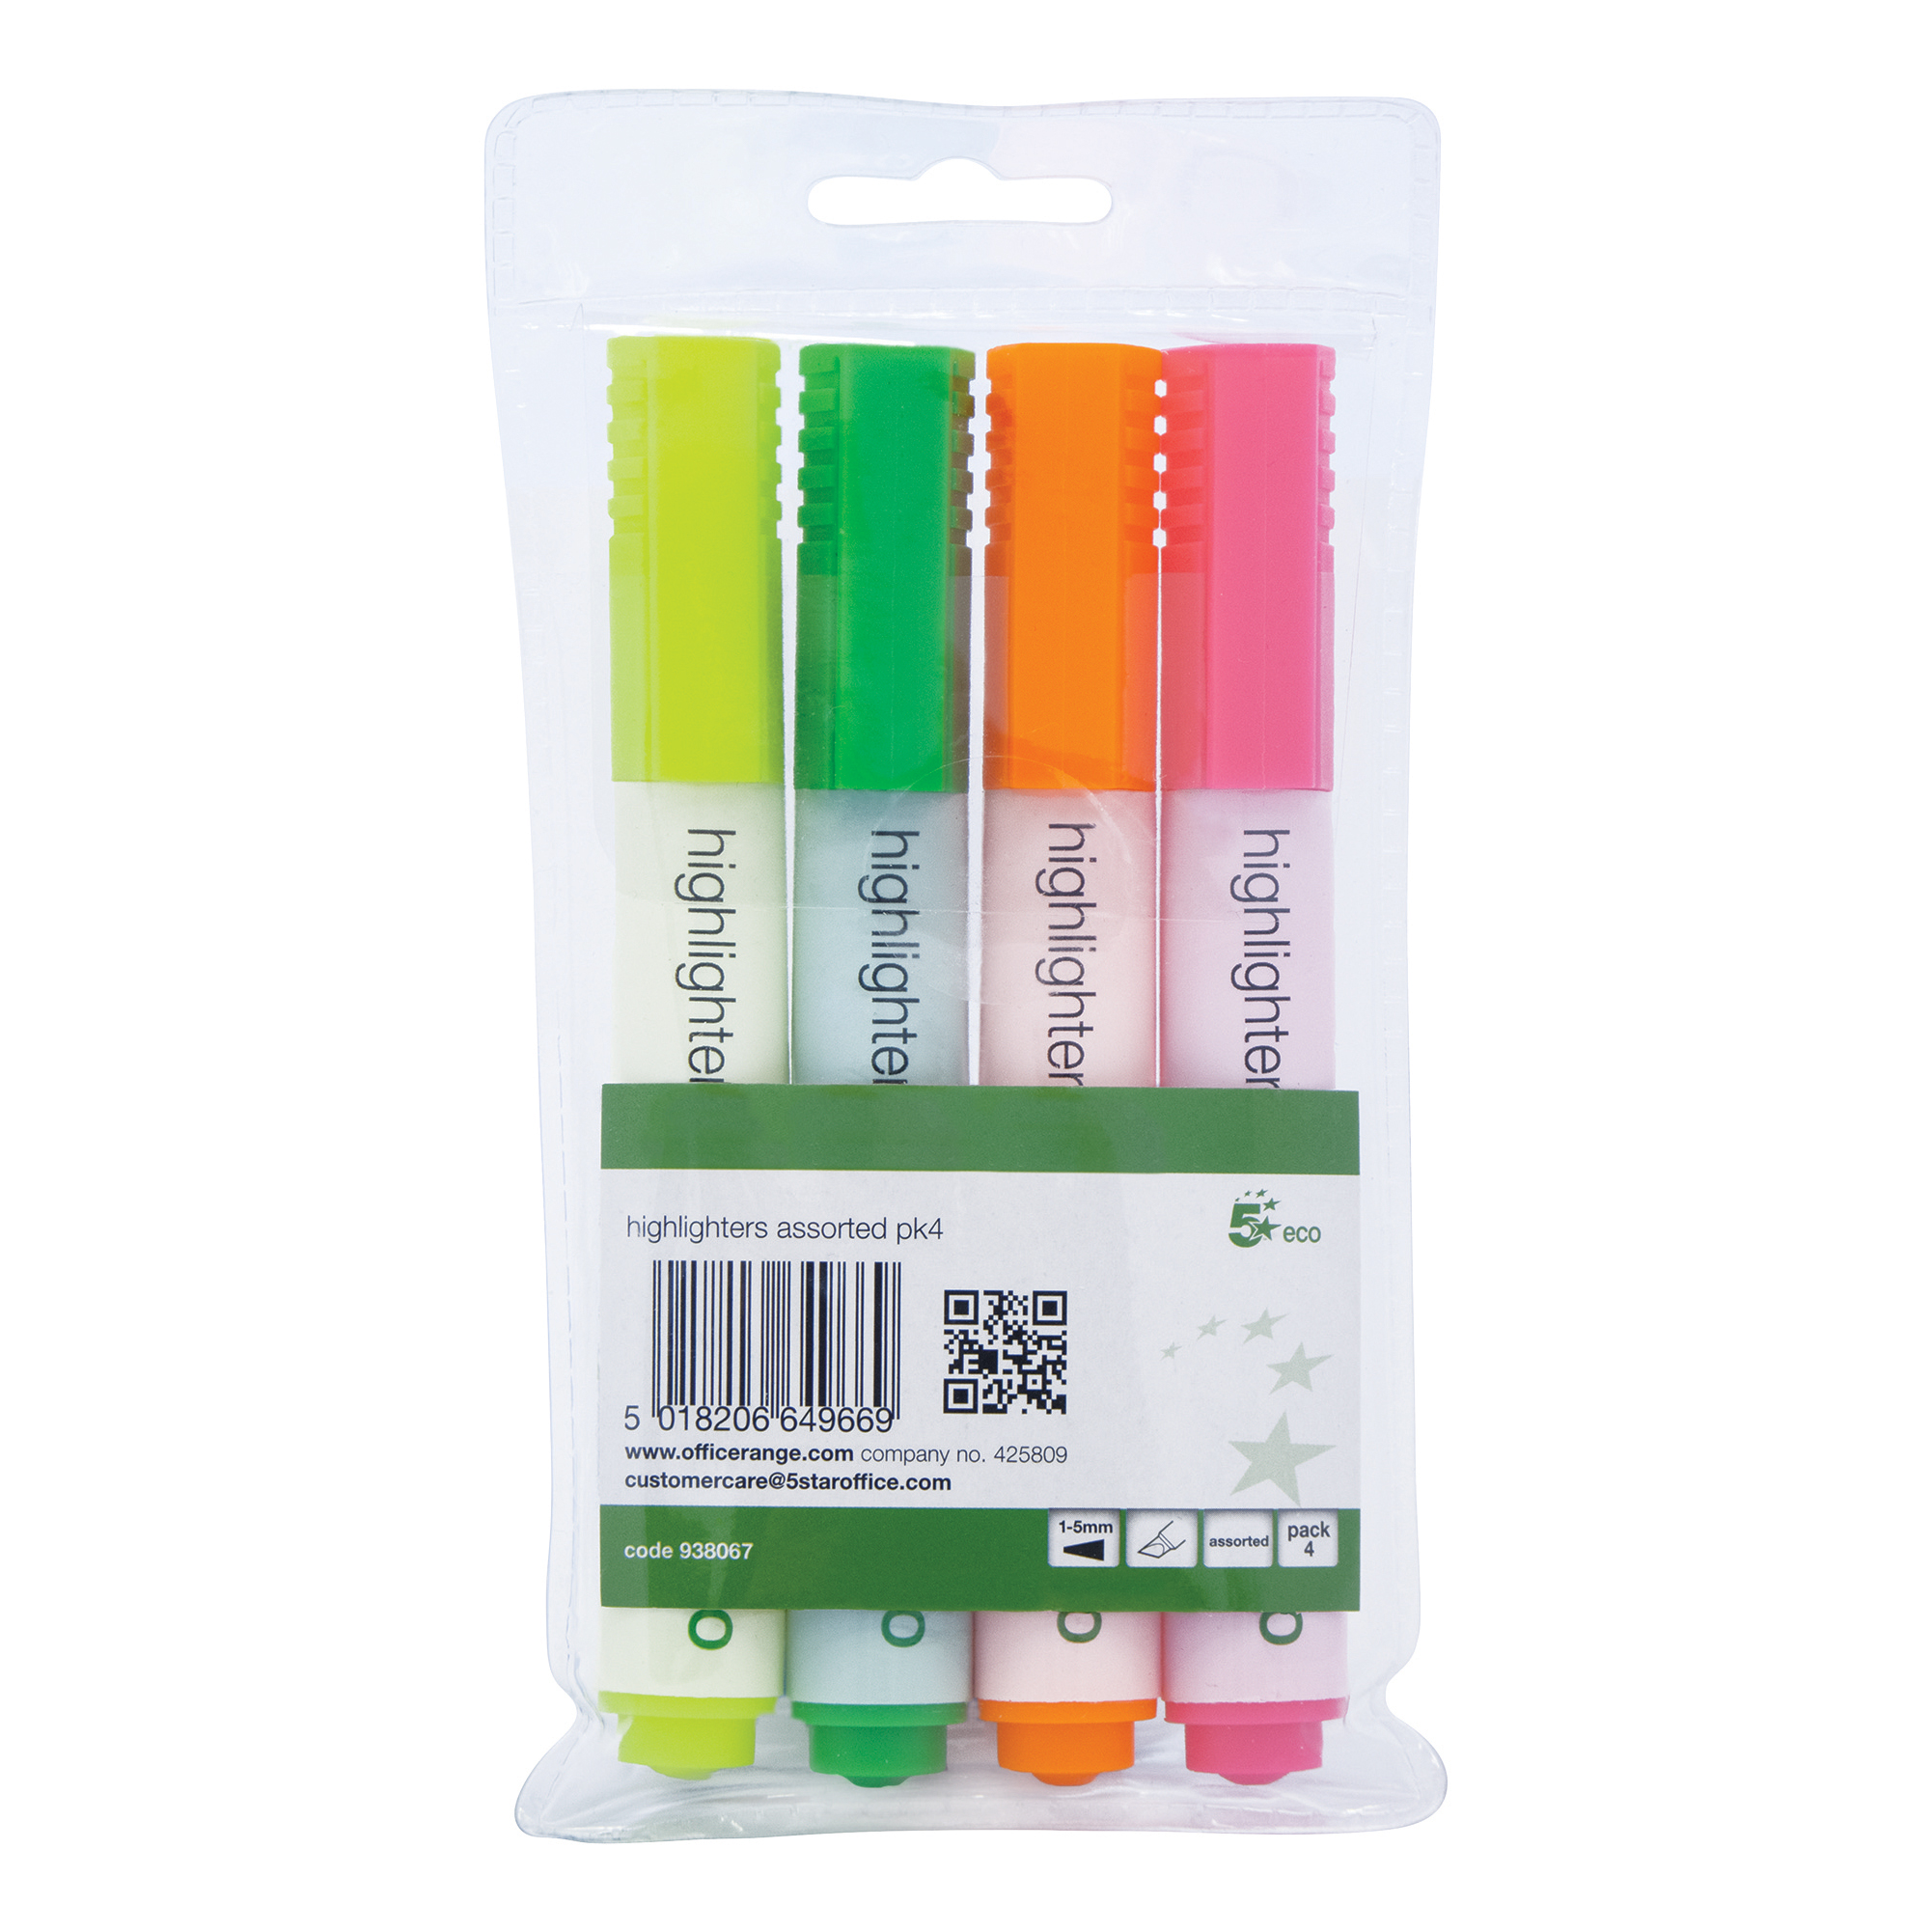 Highlighters 5 Star Eco Highlighter Chisel Tip 1-5mm Line Wallet Assorted Pack 4